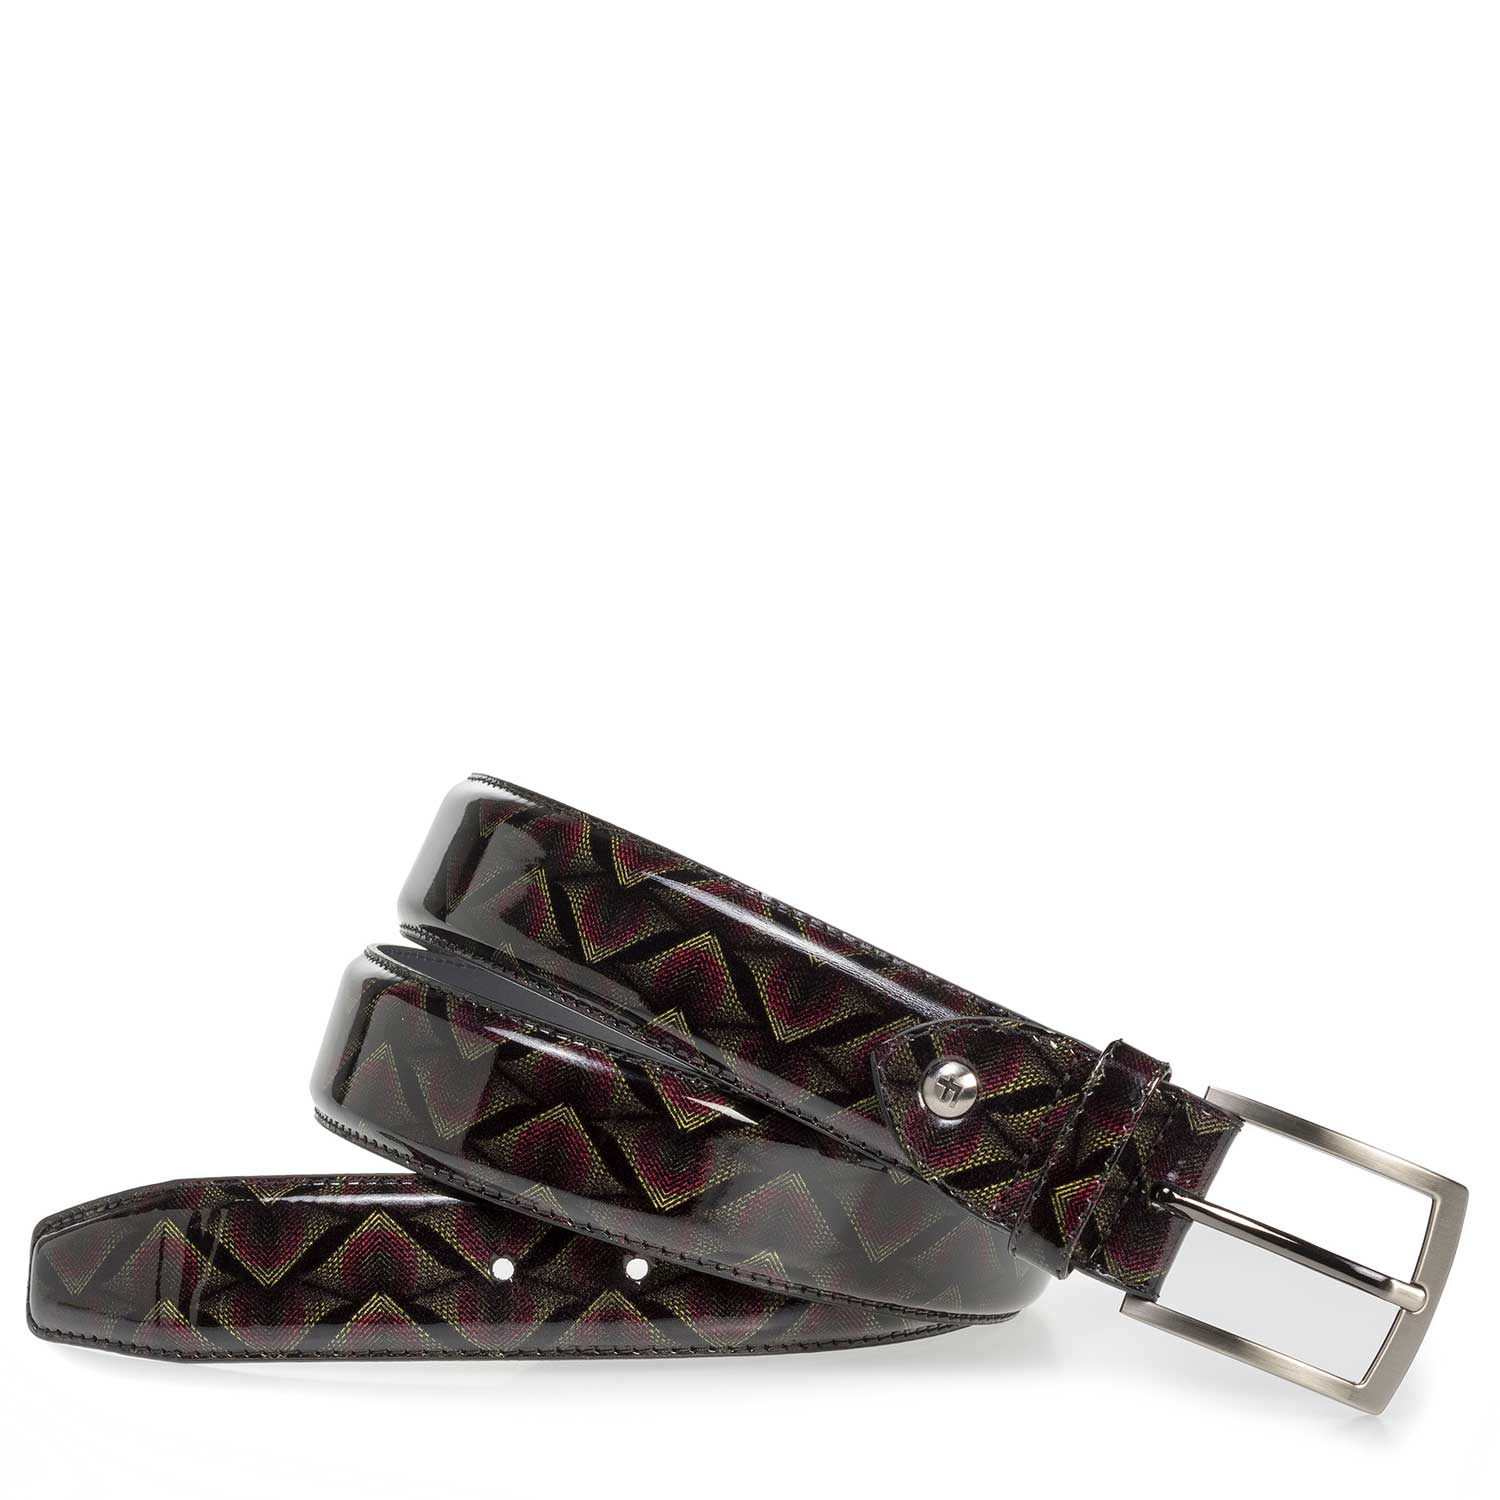 75201/55 - Burgundy red patent leather belt with print